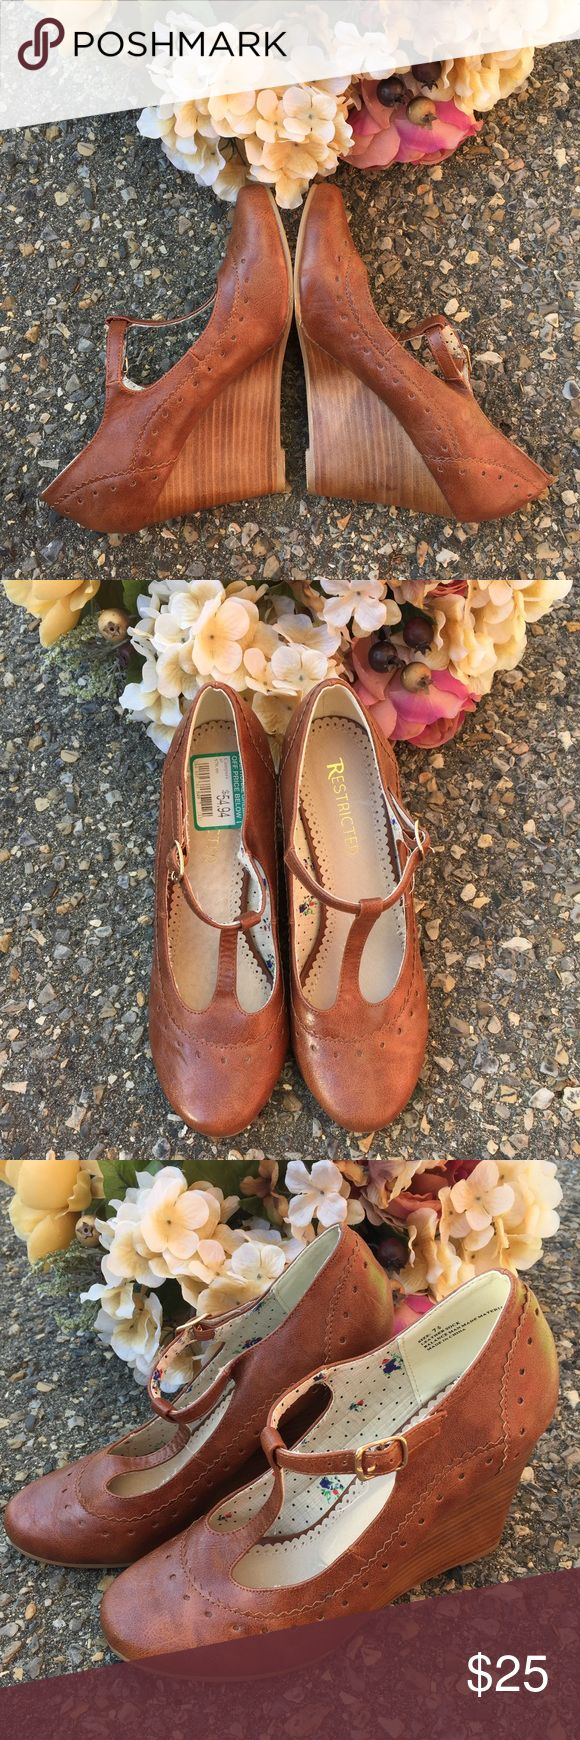 Restricted Brown Mary Jane T Strap Wedge Heel 💕💕In excellent condition. Be fashionable with this cute wedge heels to pair with your fave dress or skirt... Feel oh so girly! Sharing the love💕💕 Restricted Shoes Wedges